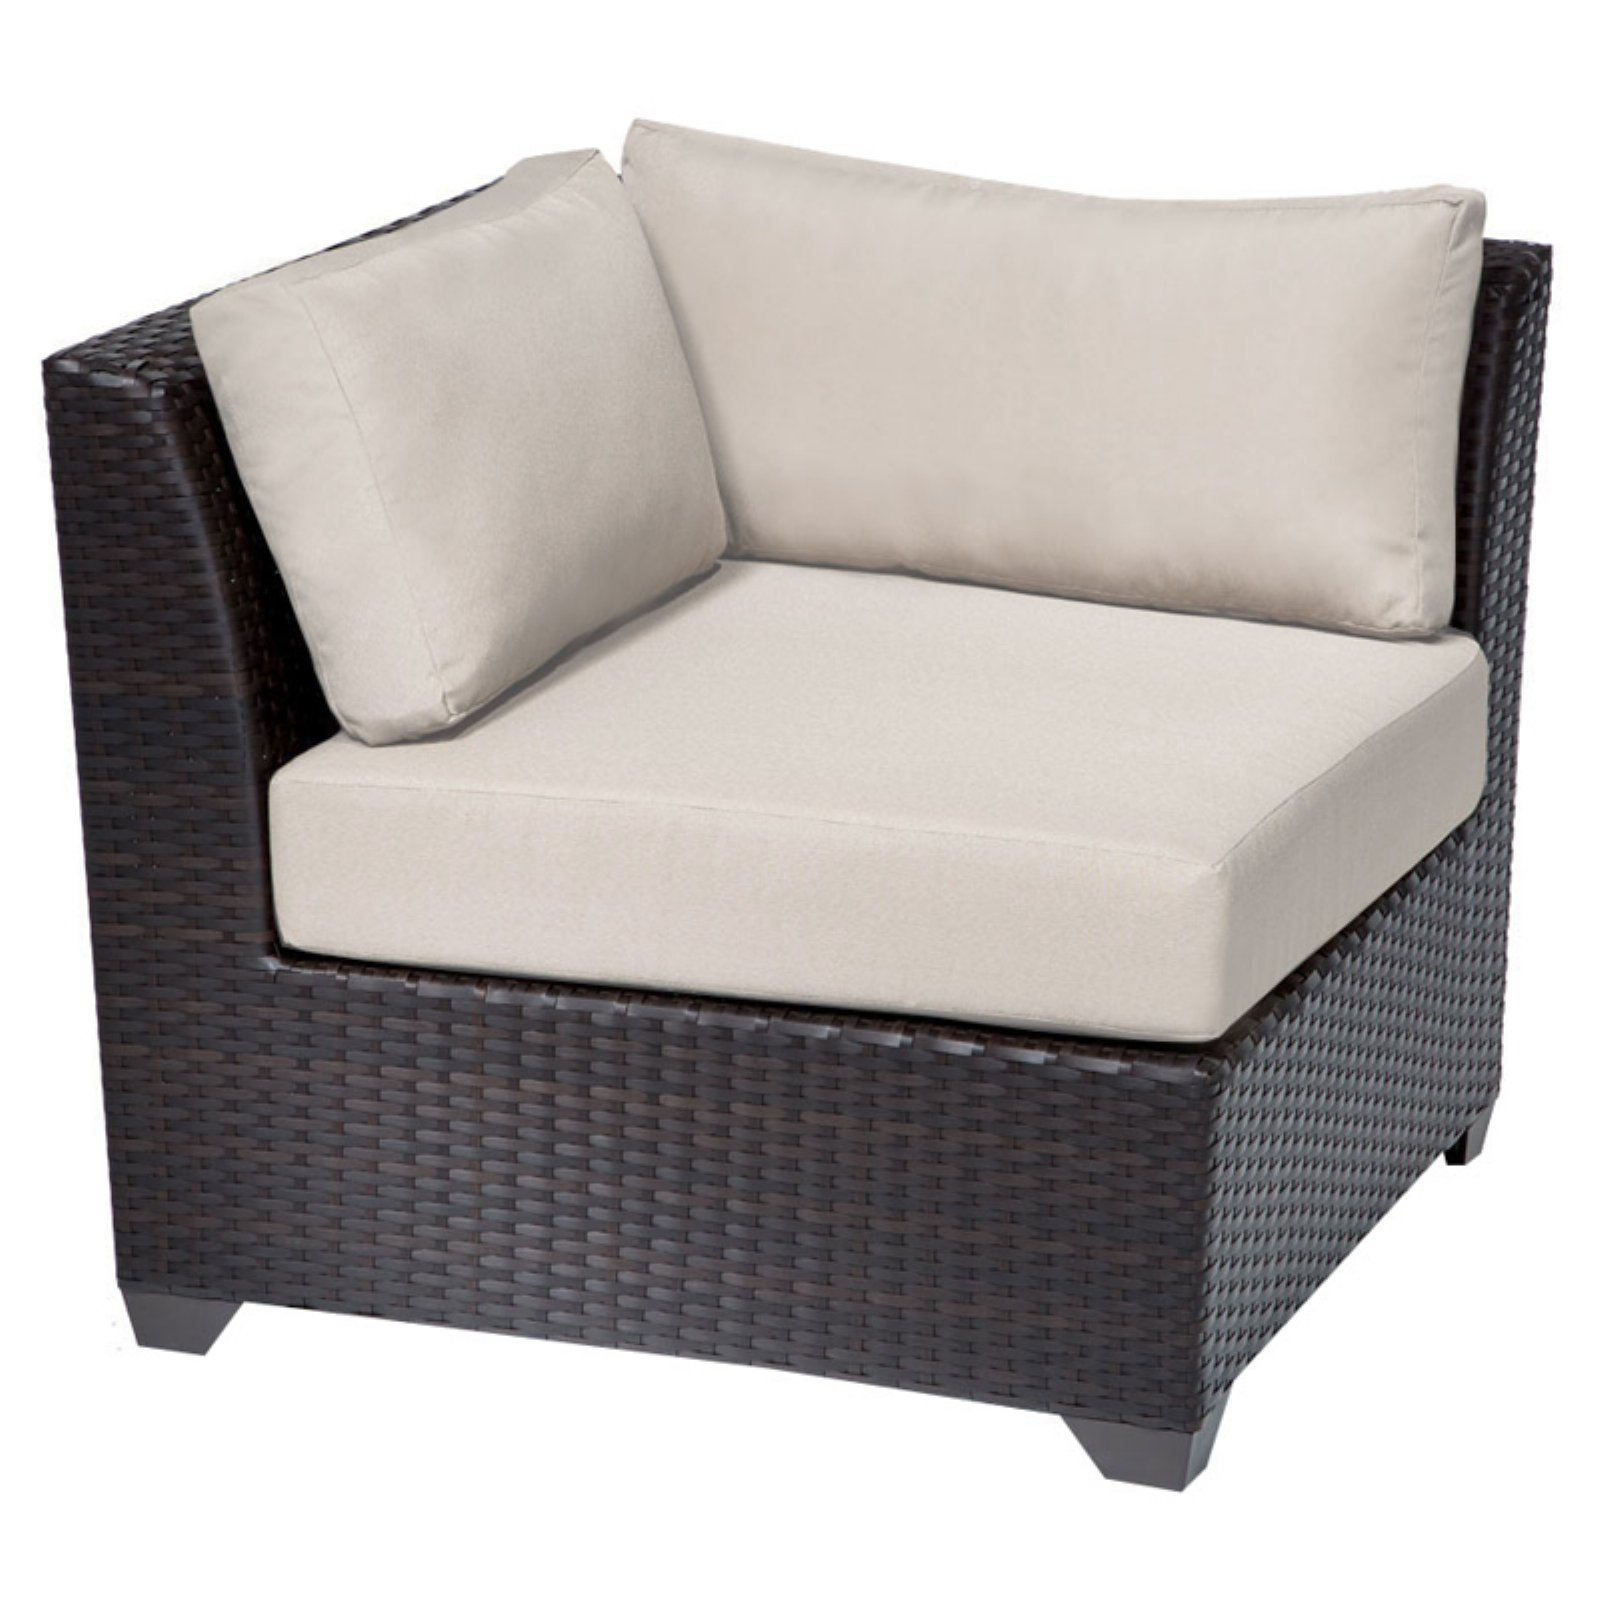 TK Classics Barbados Outdoor Corner Chair With 2 Sets Of Cushion Covers